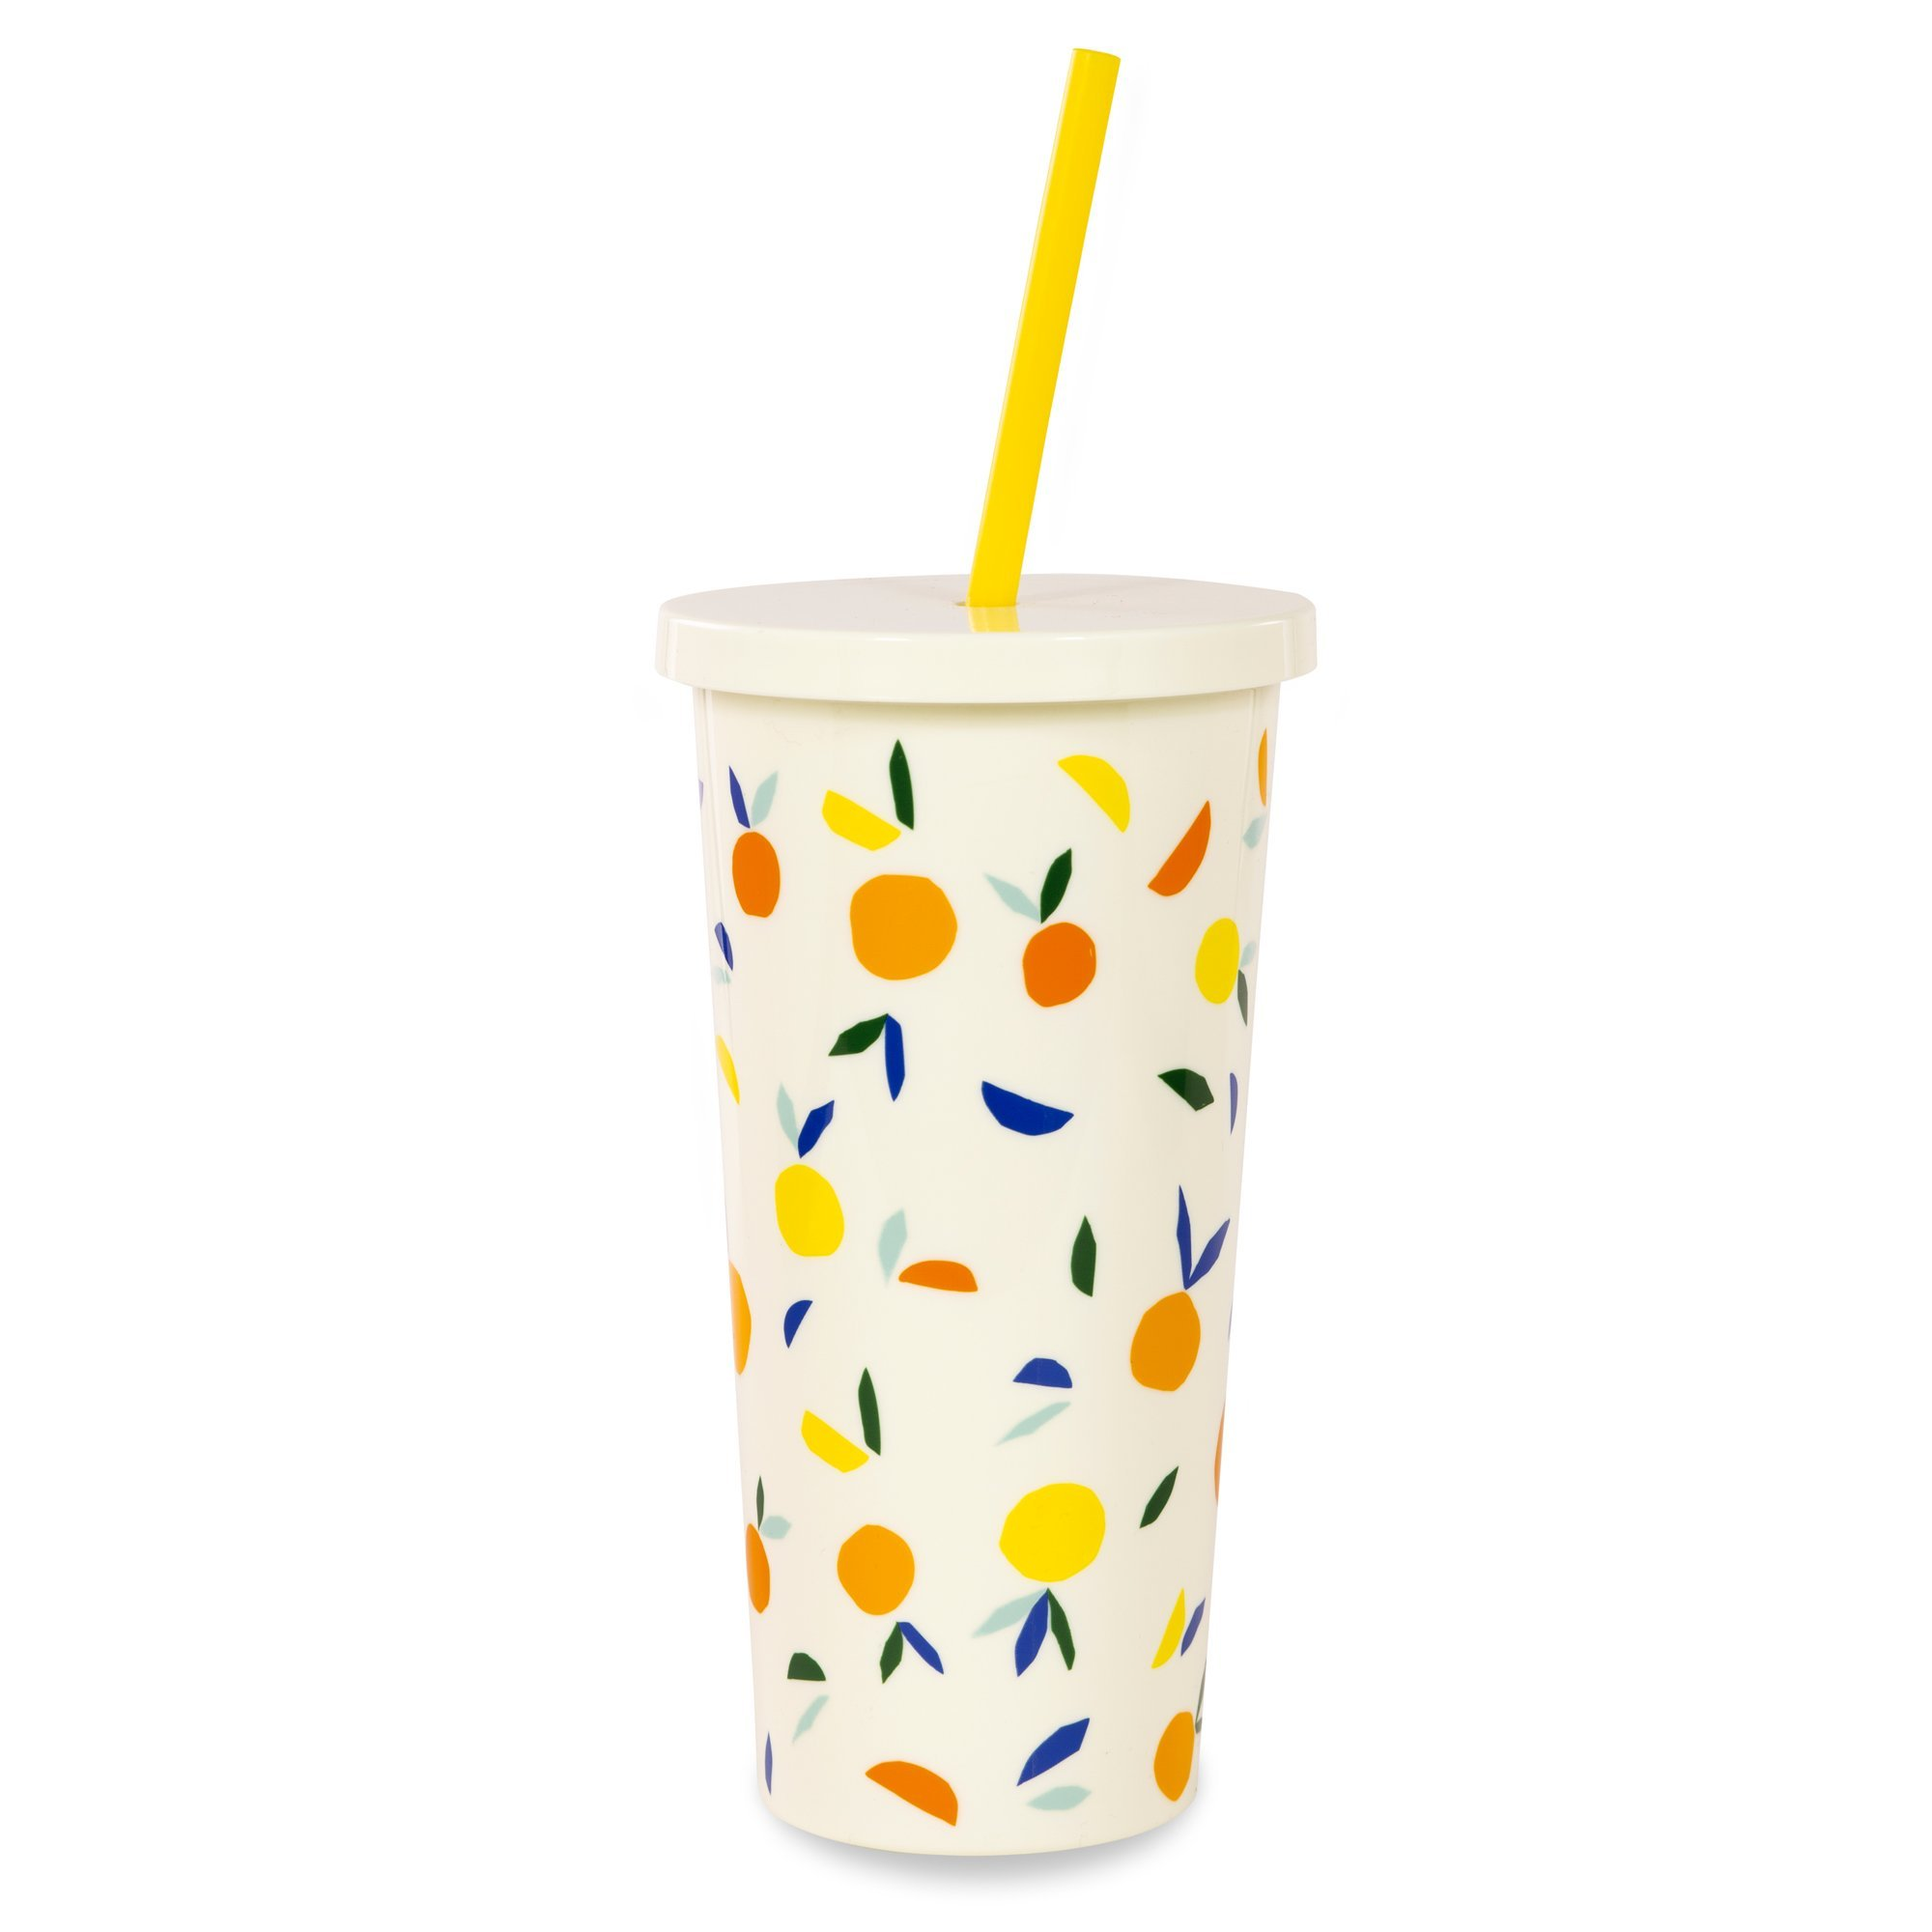 tumbler_with_straw_-_citrus_twist.jpg